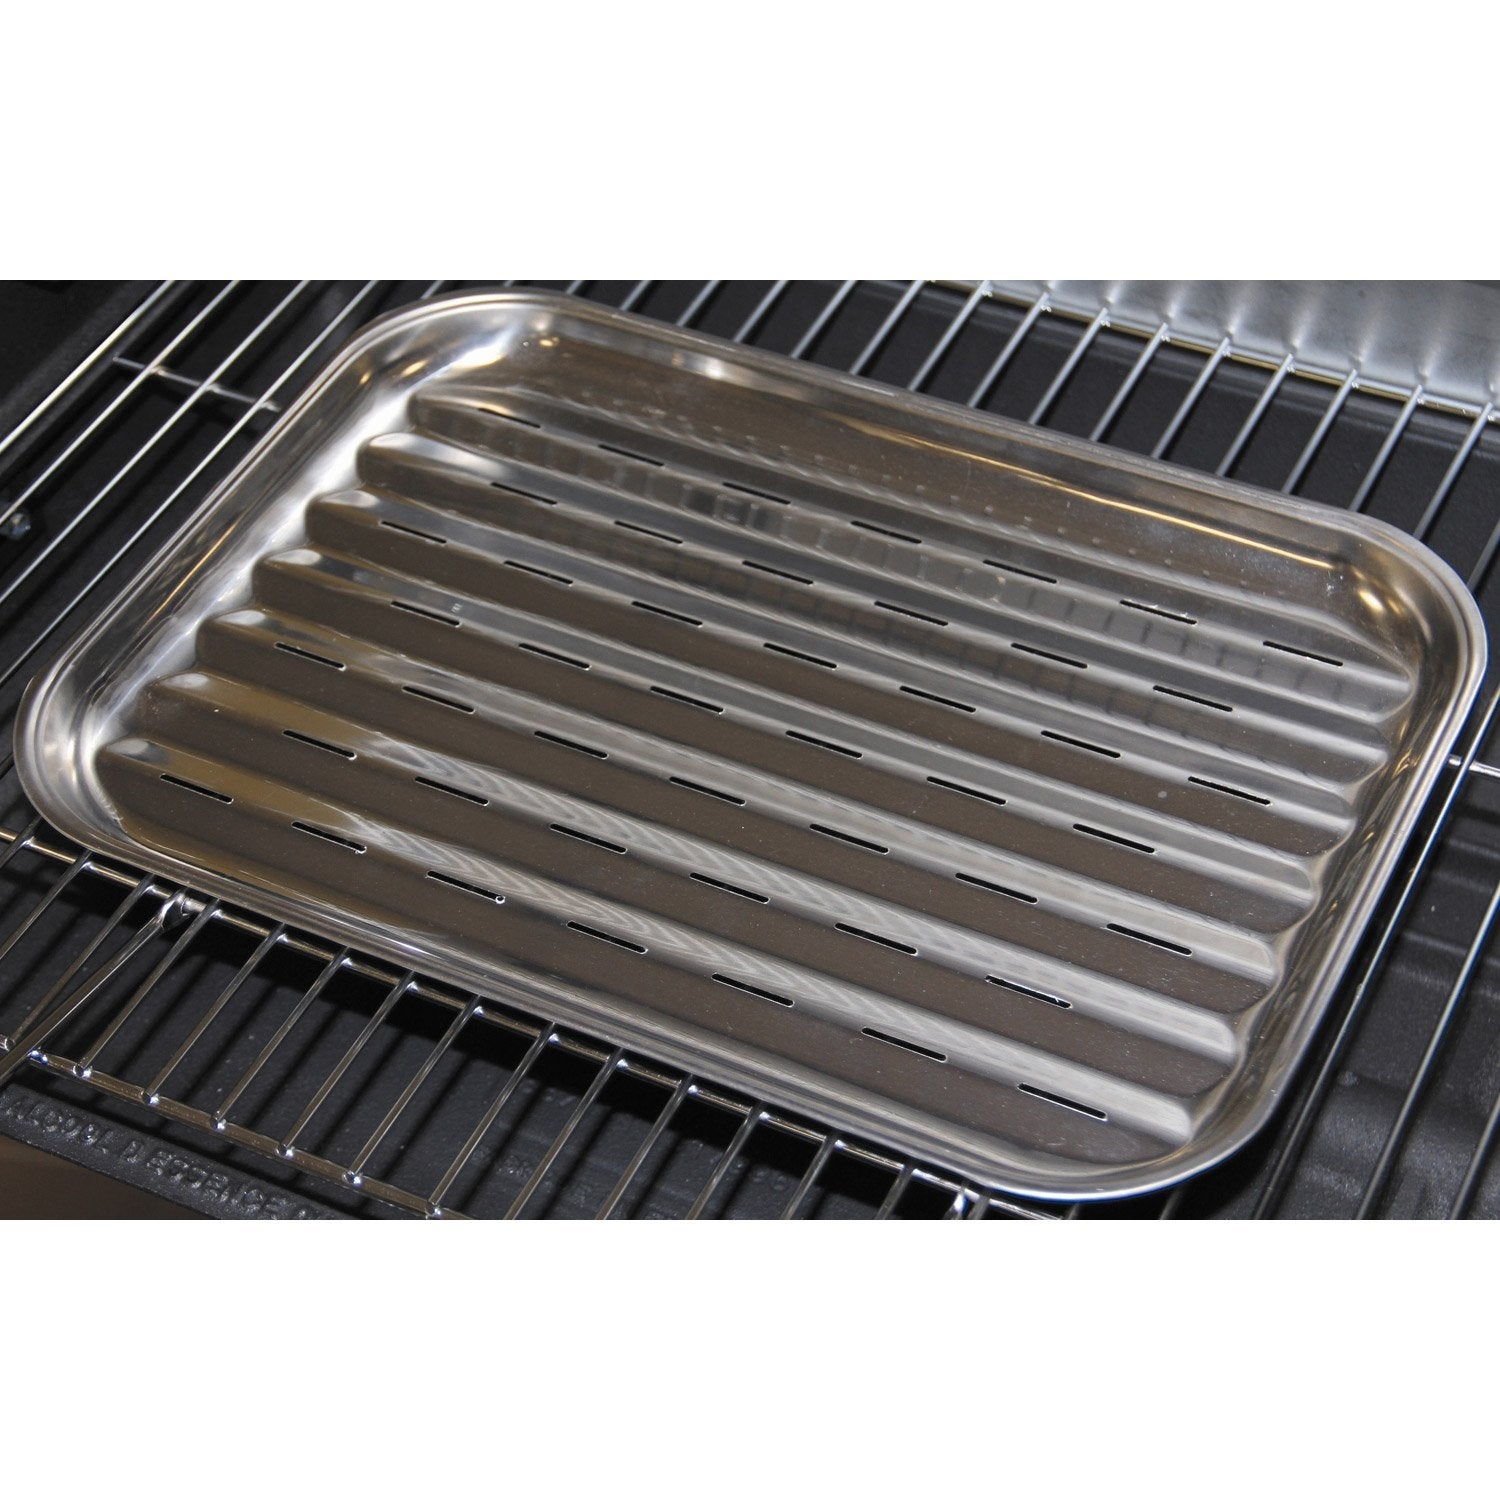 Grille naterial leroy merlin for Barbecue le roy merlin